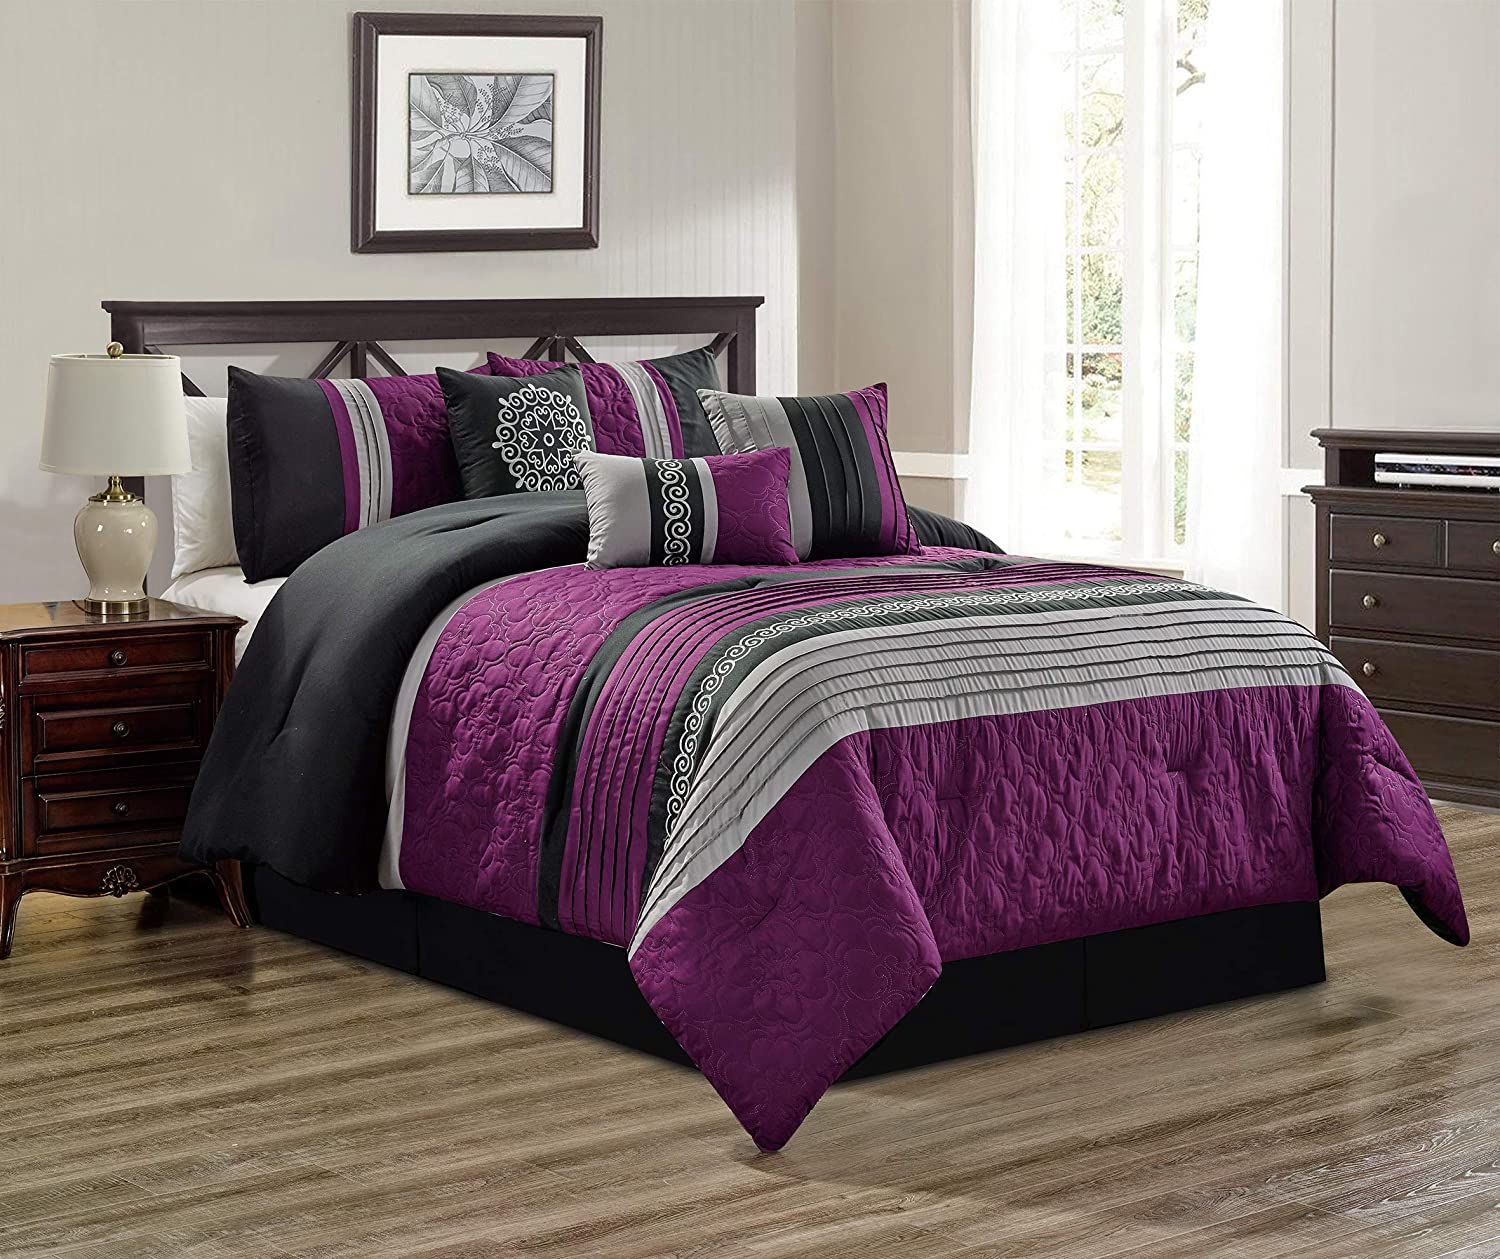 Amazon Com 7 Piece Purple Grey Black Gray Scroll Embroidery Bed In A Bag Microfiber Comforter Set Double Full Size Bedding Perfect For Any Bed Room Or Guest Room Home Kitchen